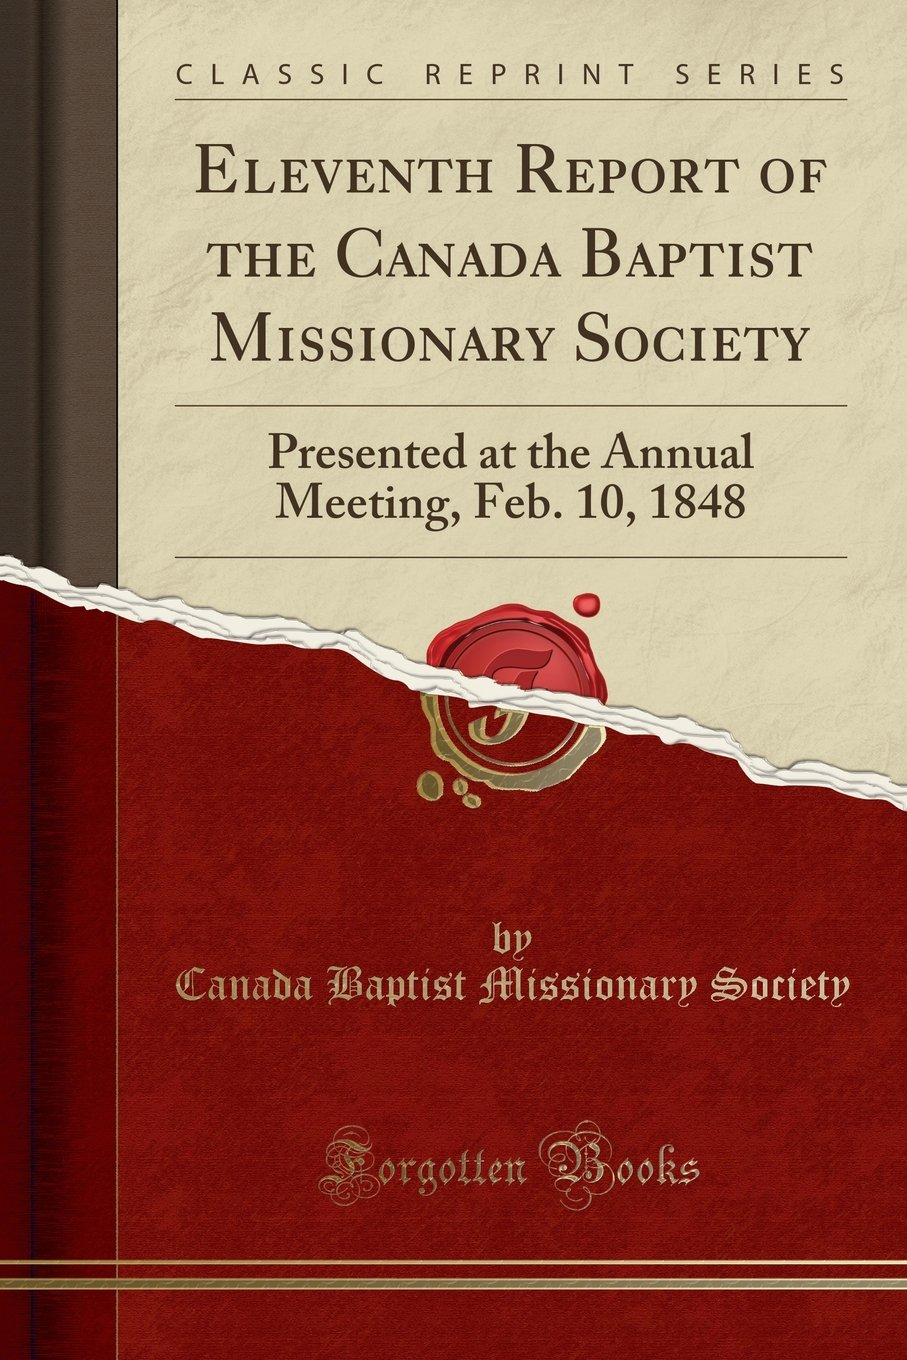 Eleventh Report of the Canada Baptist Missionary Society: Presented at the Annual Meeting, Feb. 10, 1848 (Classic Reprint) pdf epub